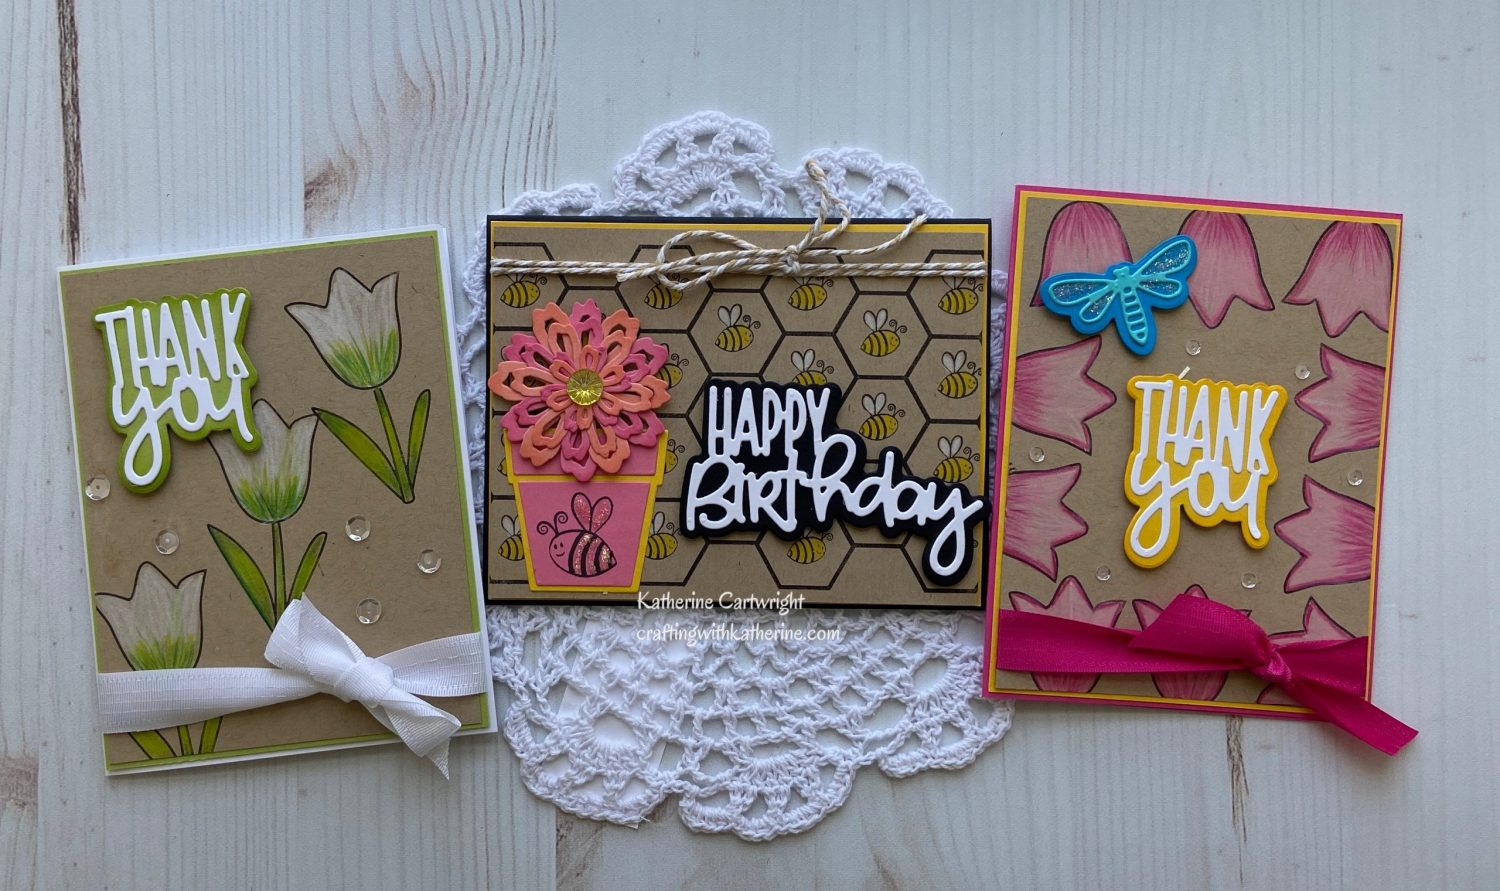 Handmade Cards: Wonderful Windmill and Fancy That